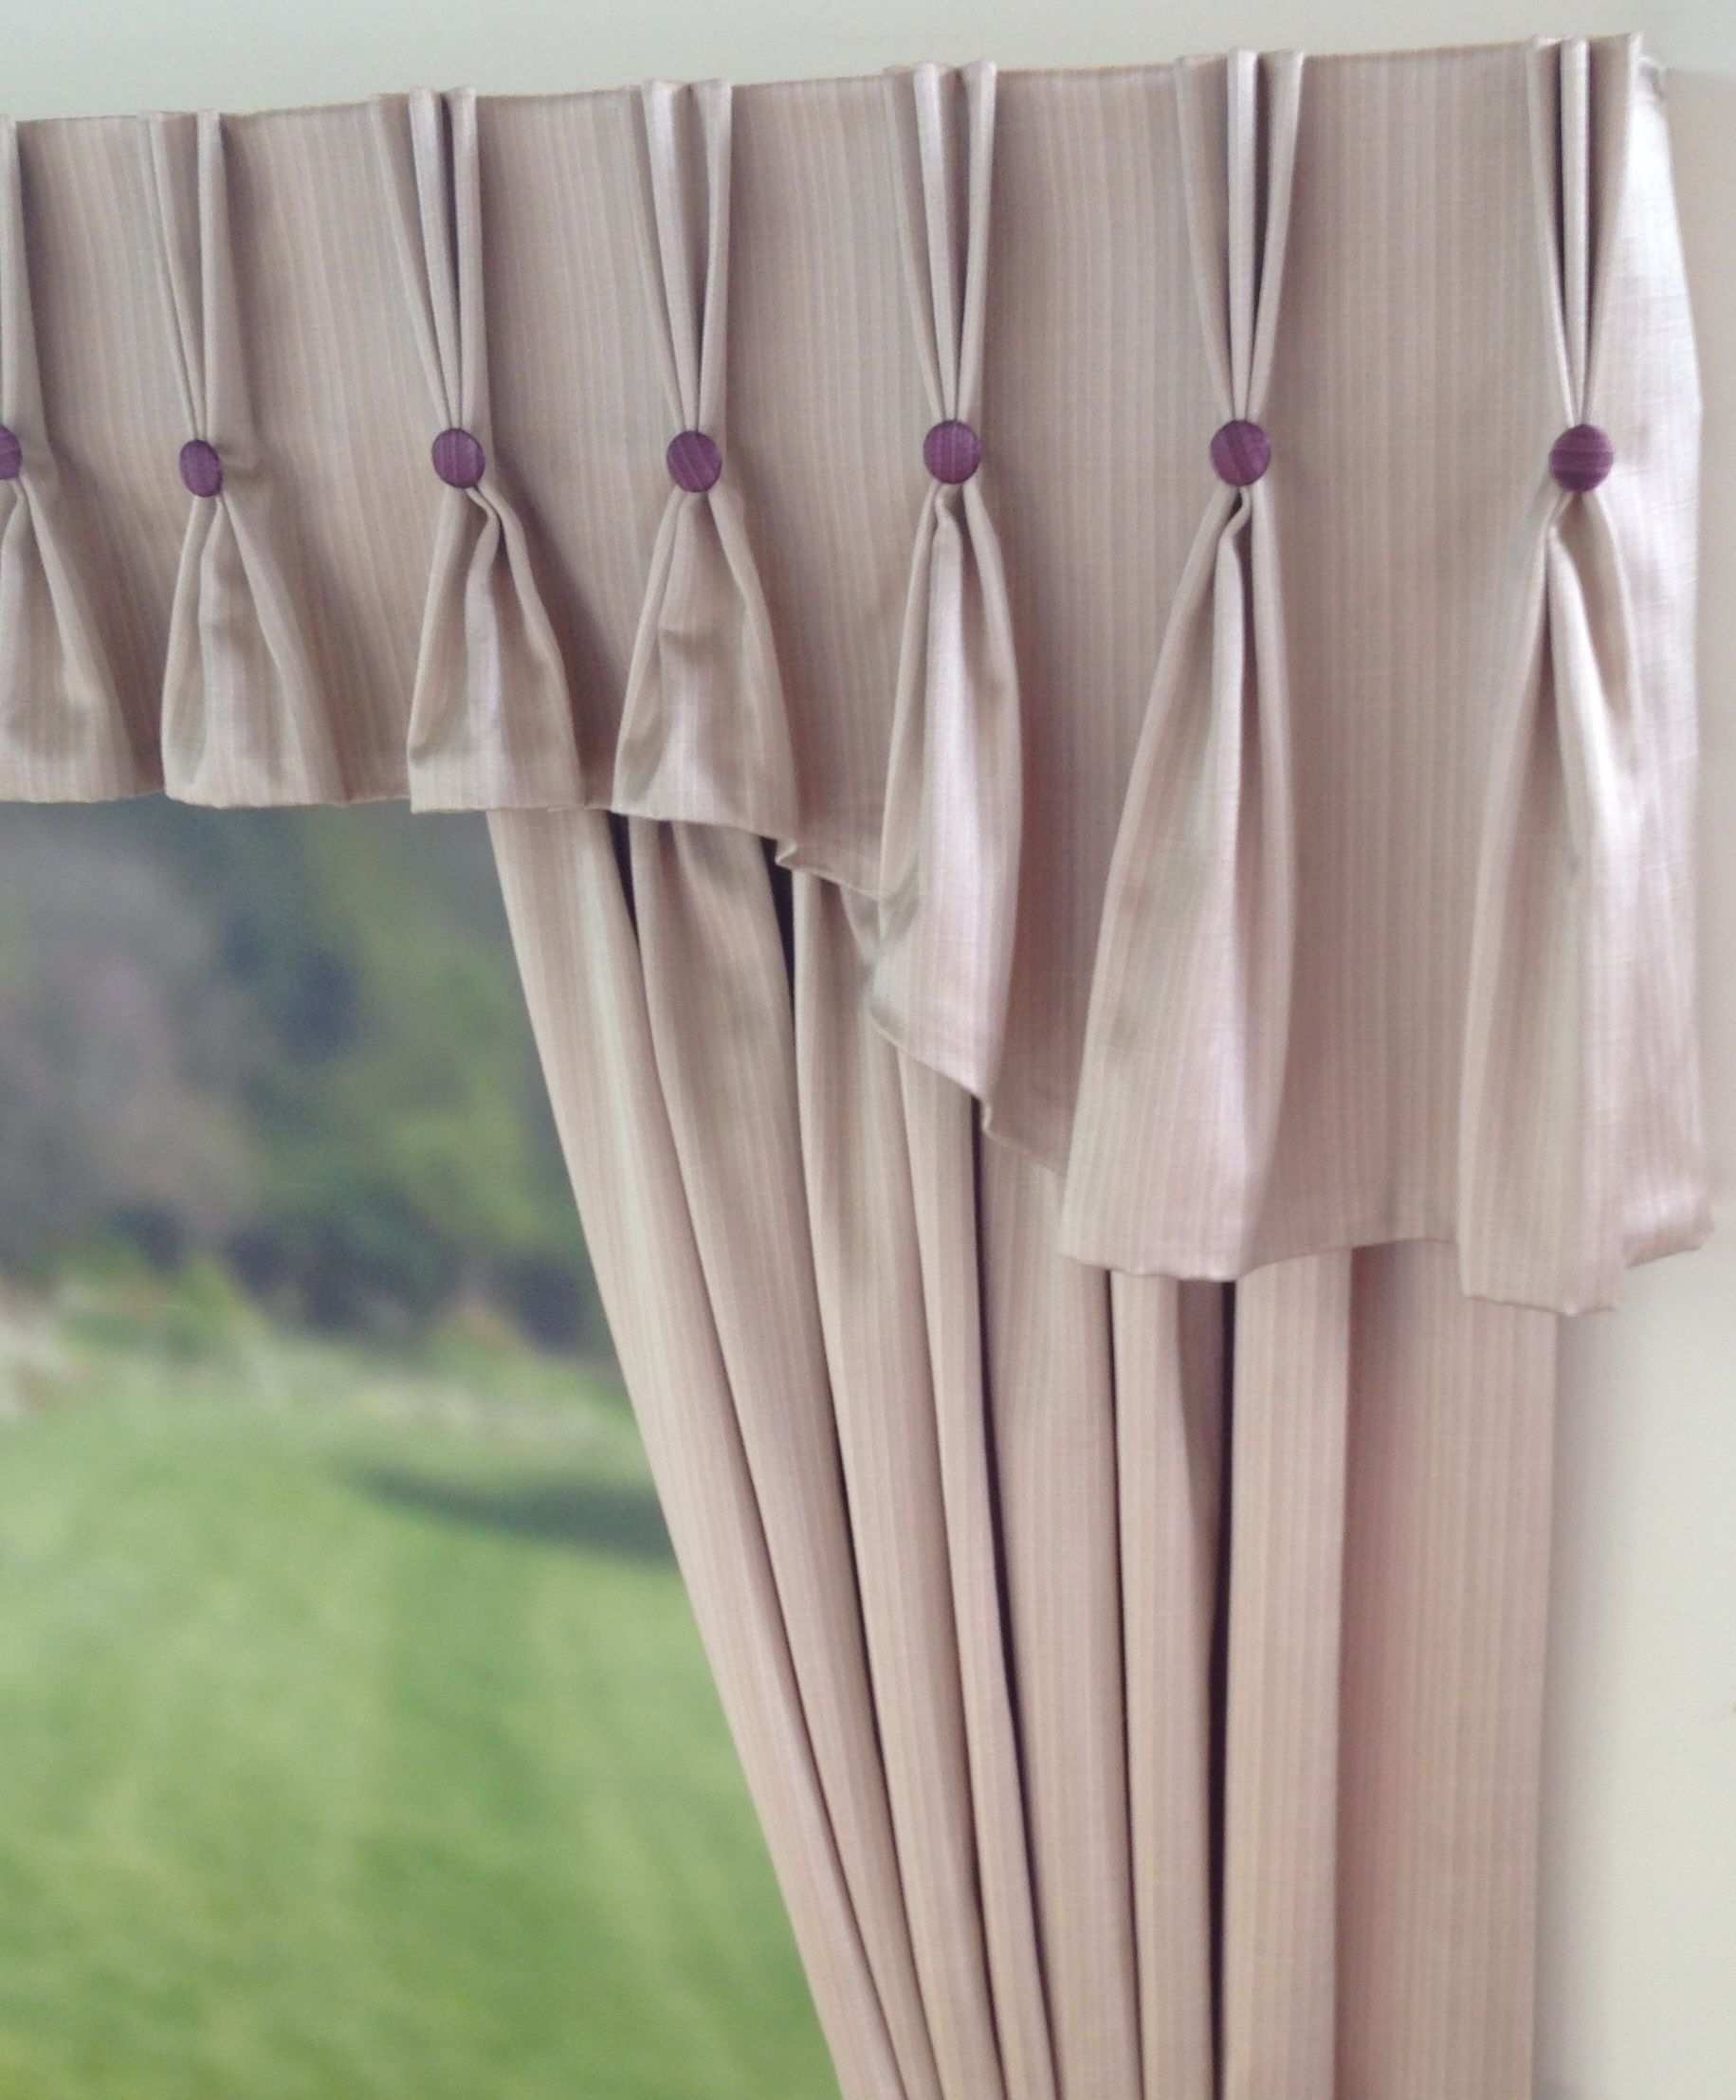 Curtain and valance designs - Shaped Pinch Pleat Curtain Valance With Buttons